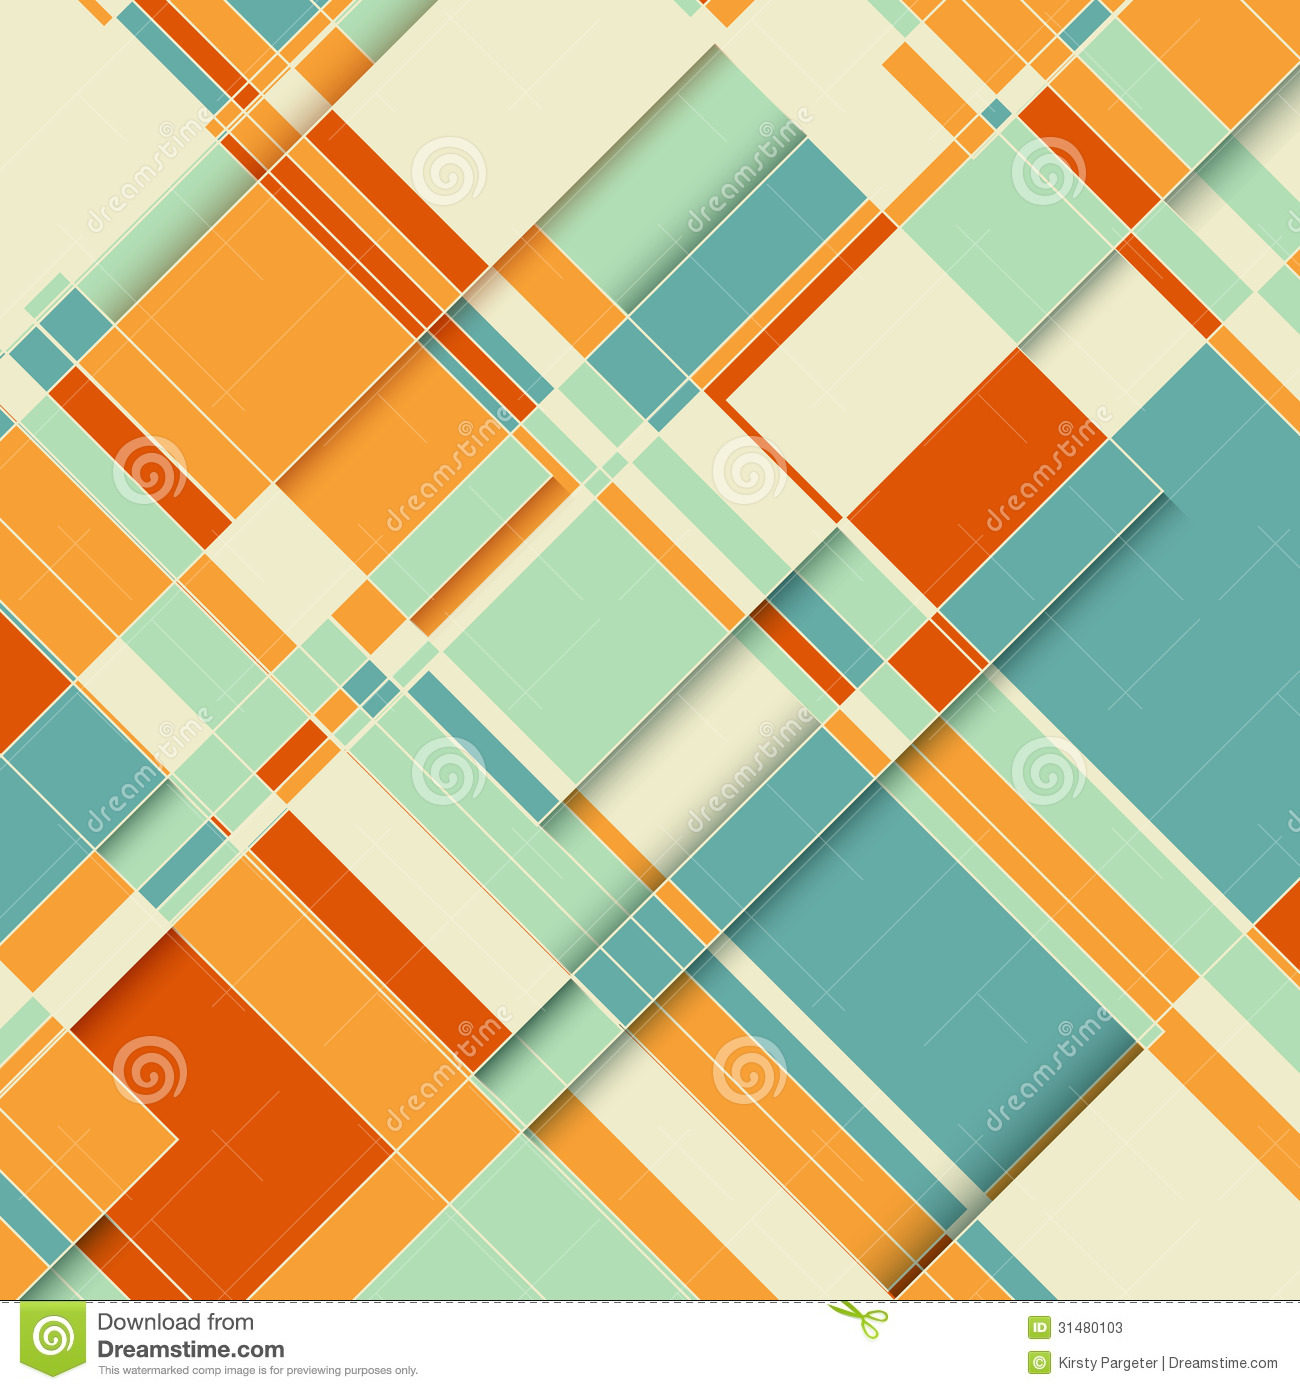 Abstract Design Background Stock Photos - Image: 31480103